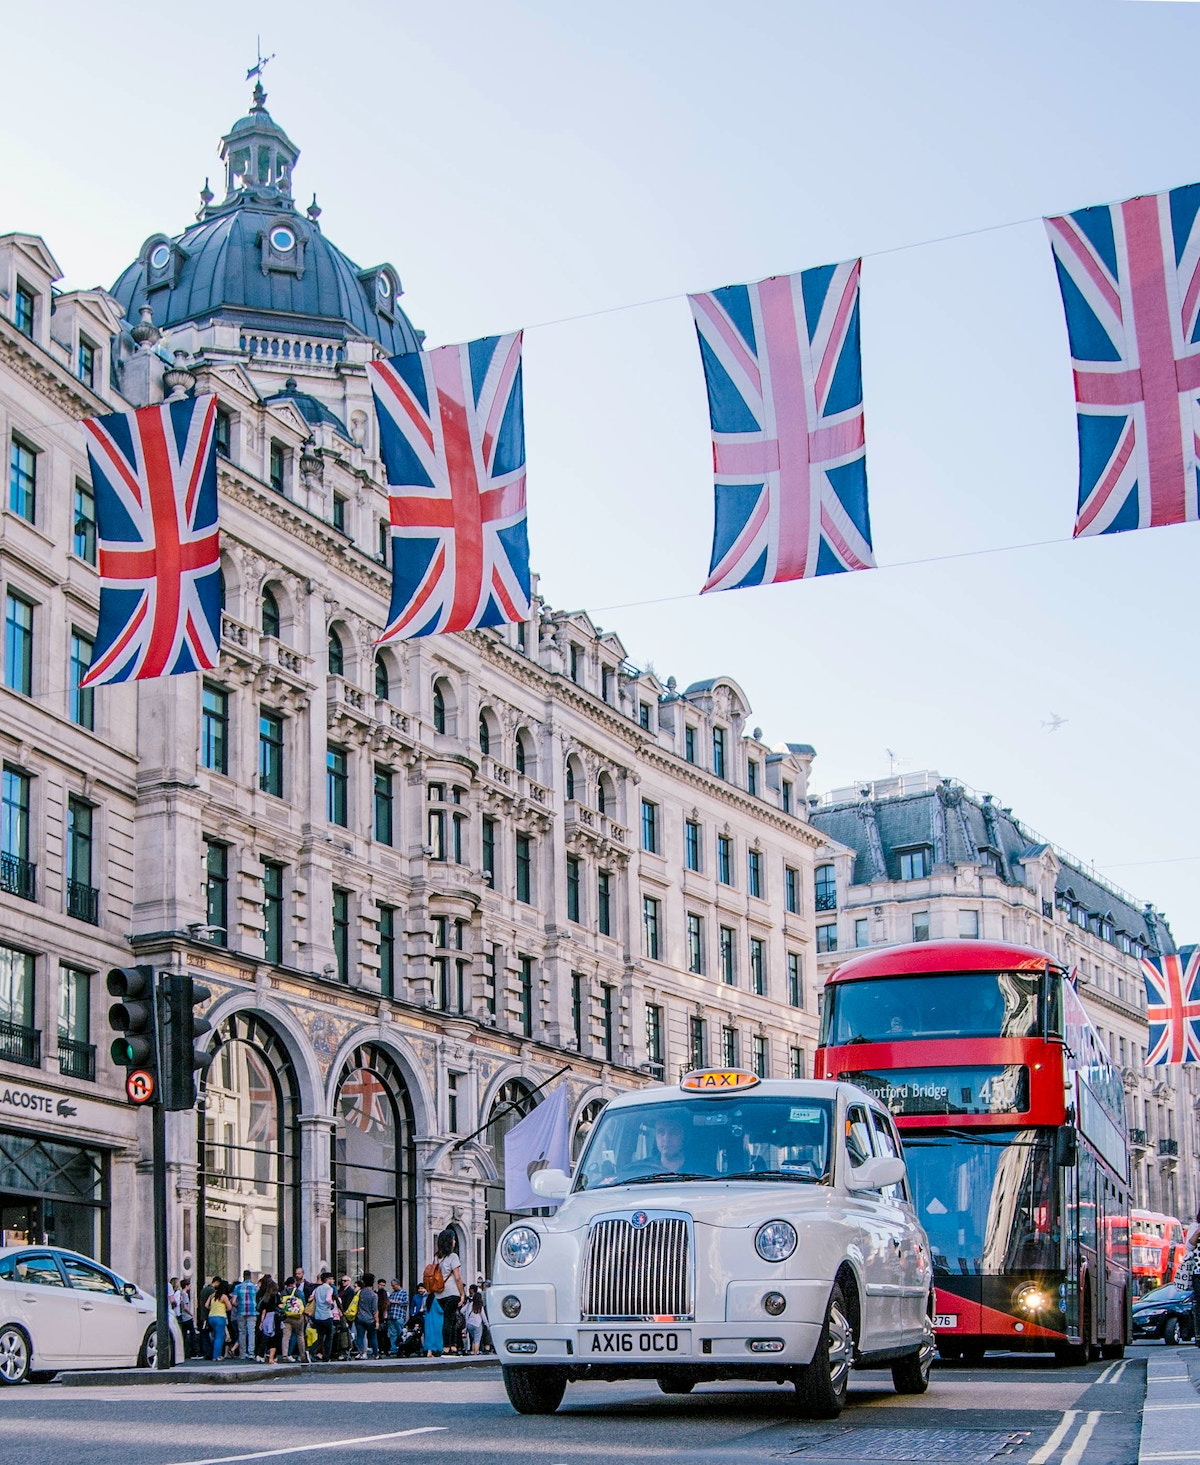 uk flags over double decker bus